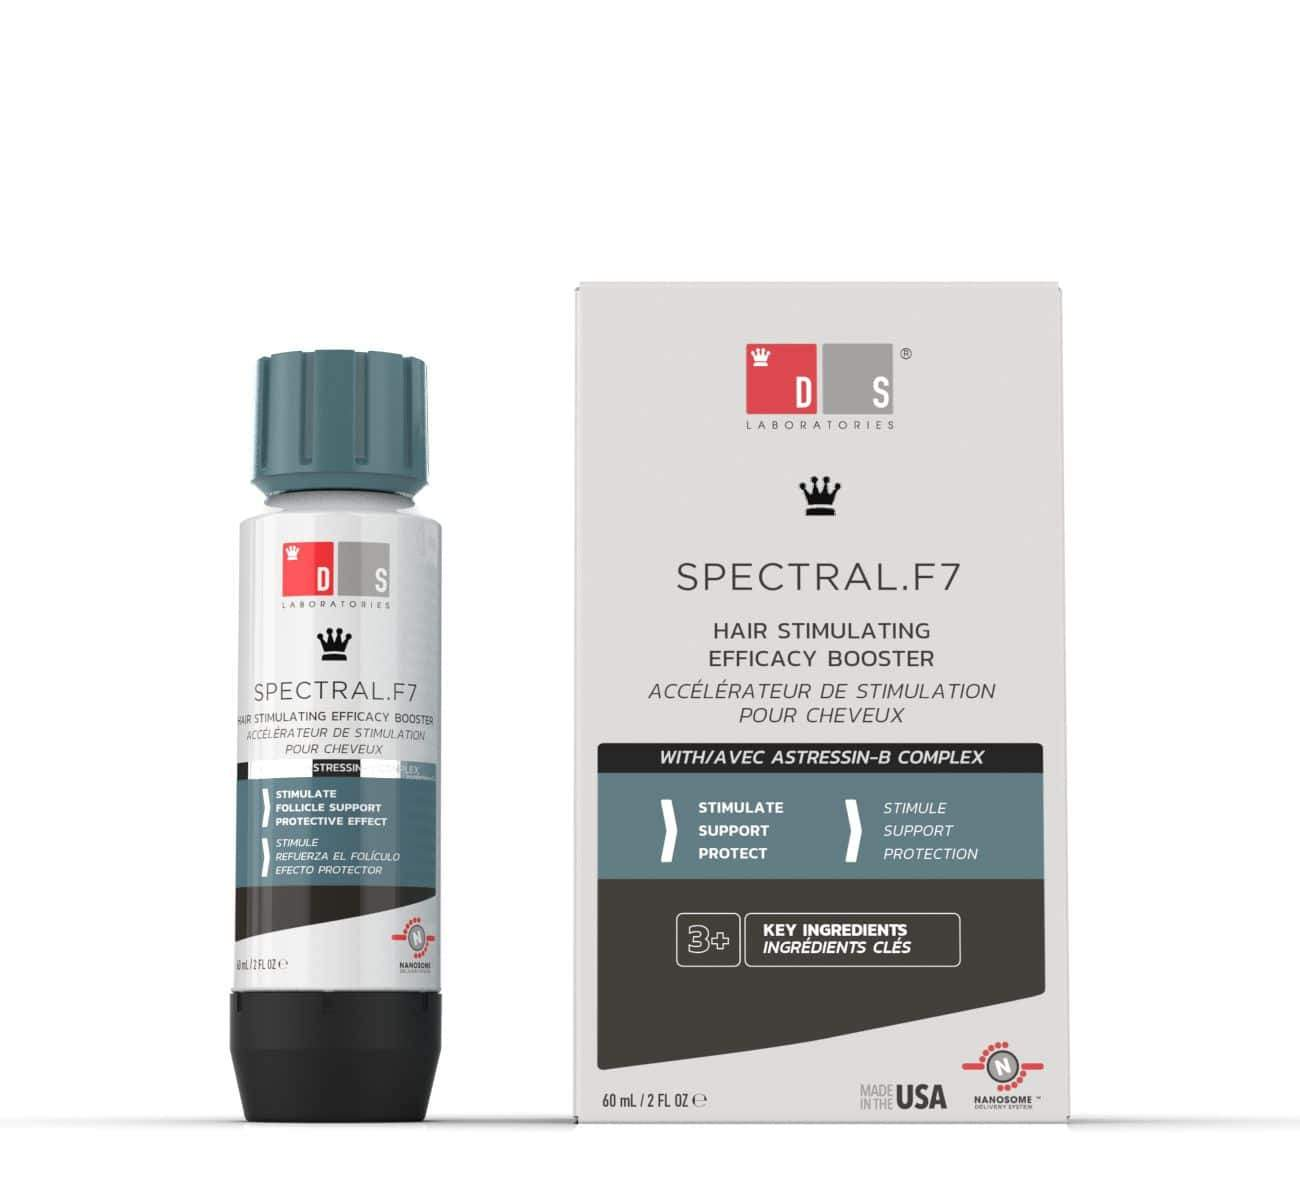 Spectral.F7 | Efficacy Booster Agent with Astressin B